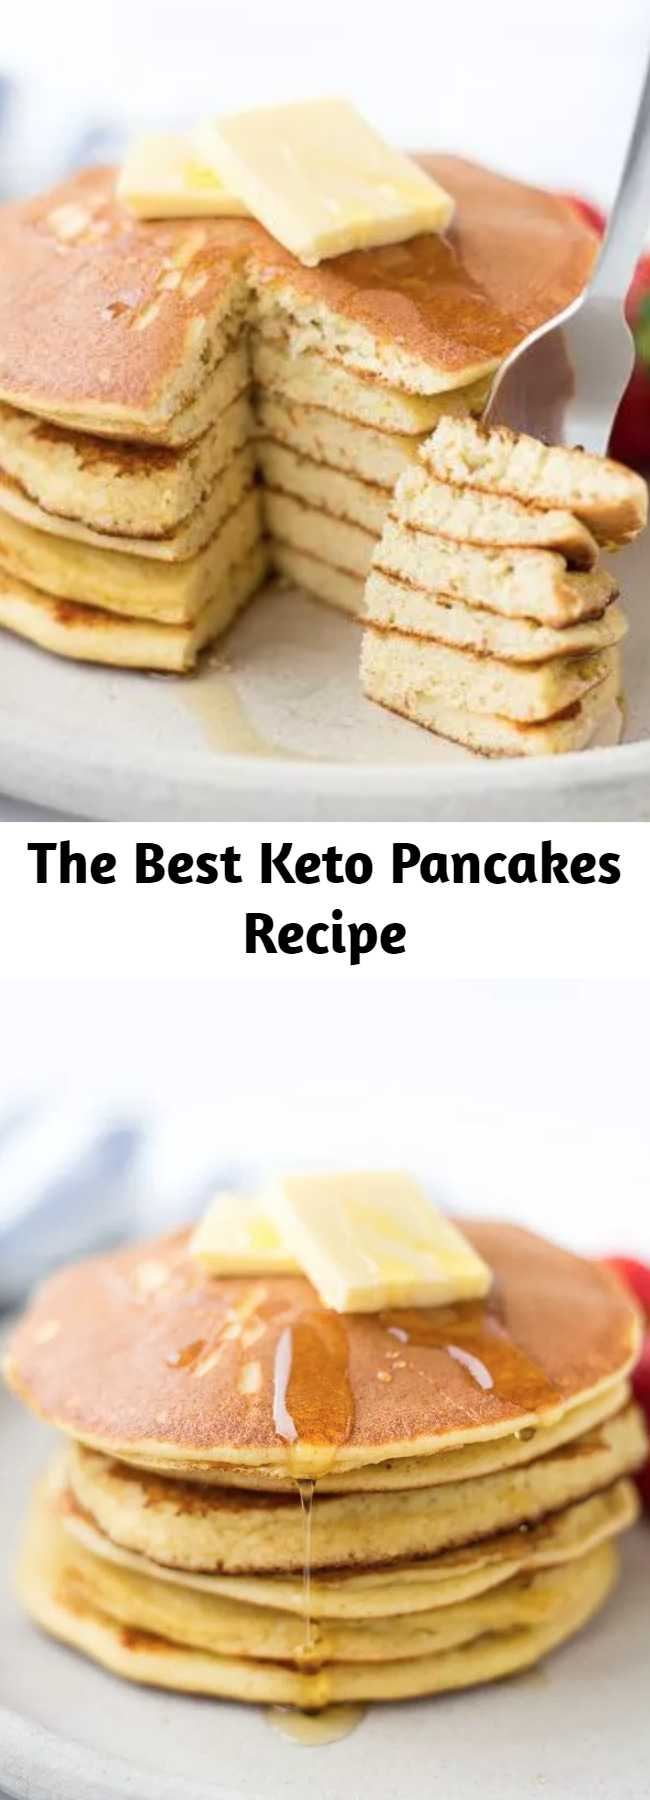 The Best Keto Pancakes Recipe - The Best Keto Pancakes recipe that has ever been made in our household! Made with just 6-ingredients this keto pancake mix is so easy to whip together with almond flour. Sunday morning pancakes will become a normal here on out.